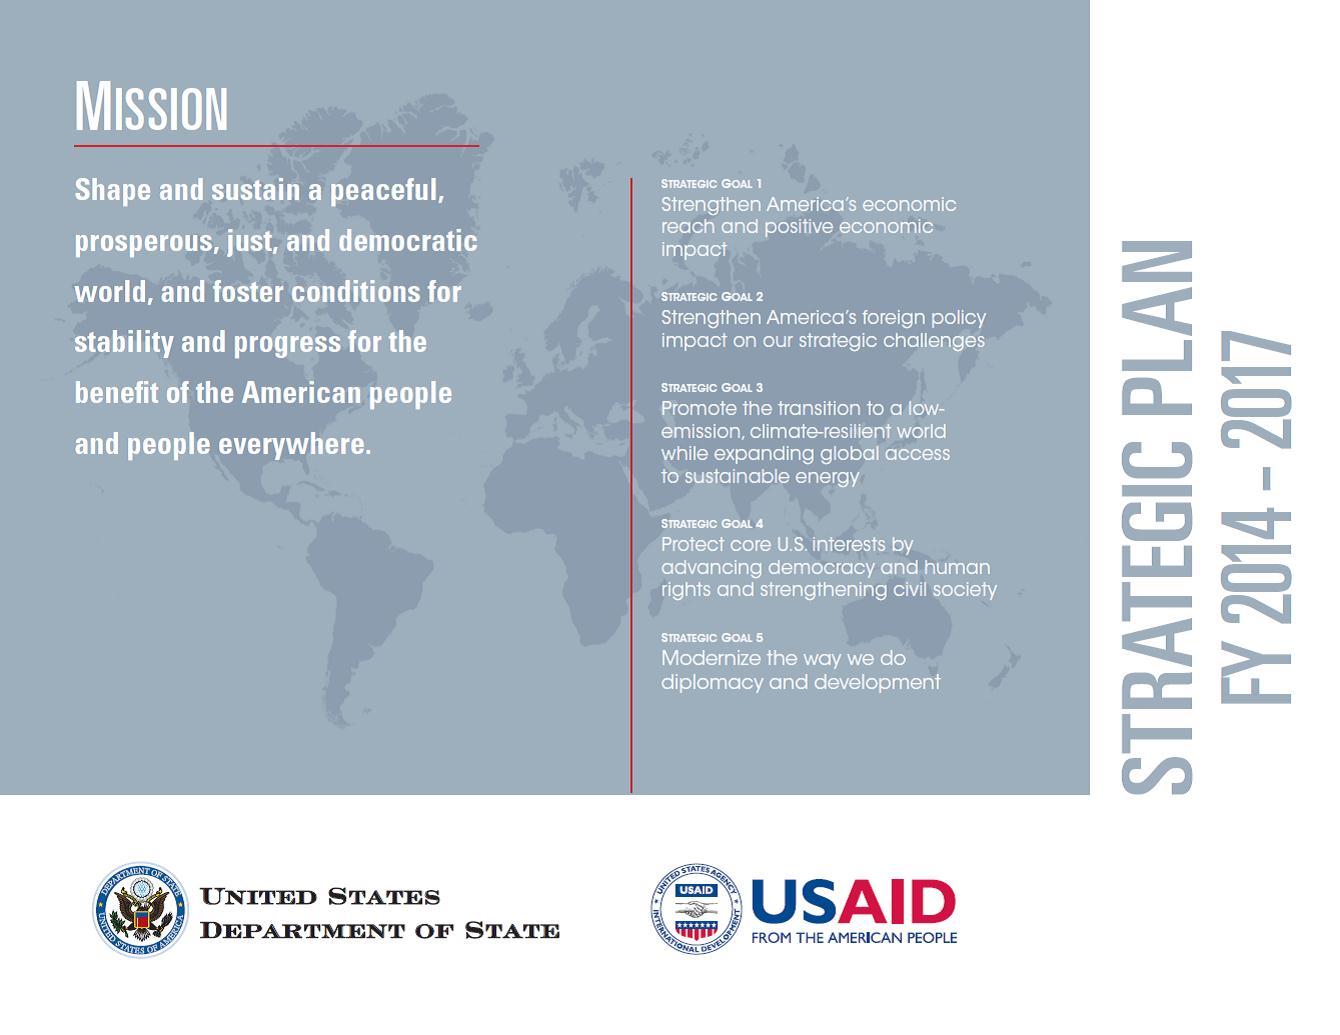 USAID and Department of State Strategic Plan FY 2014-2017